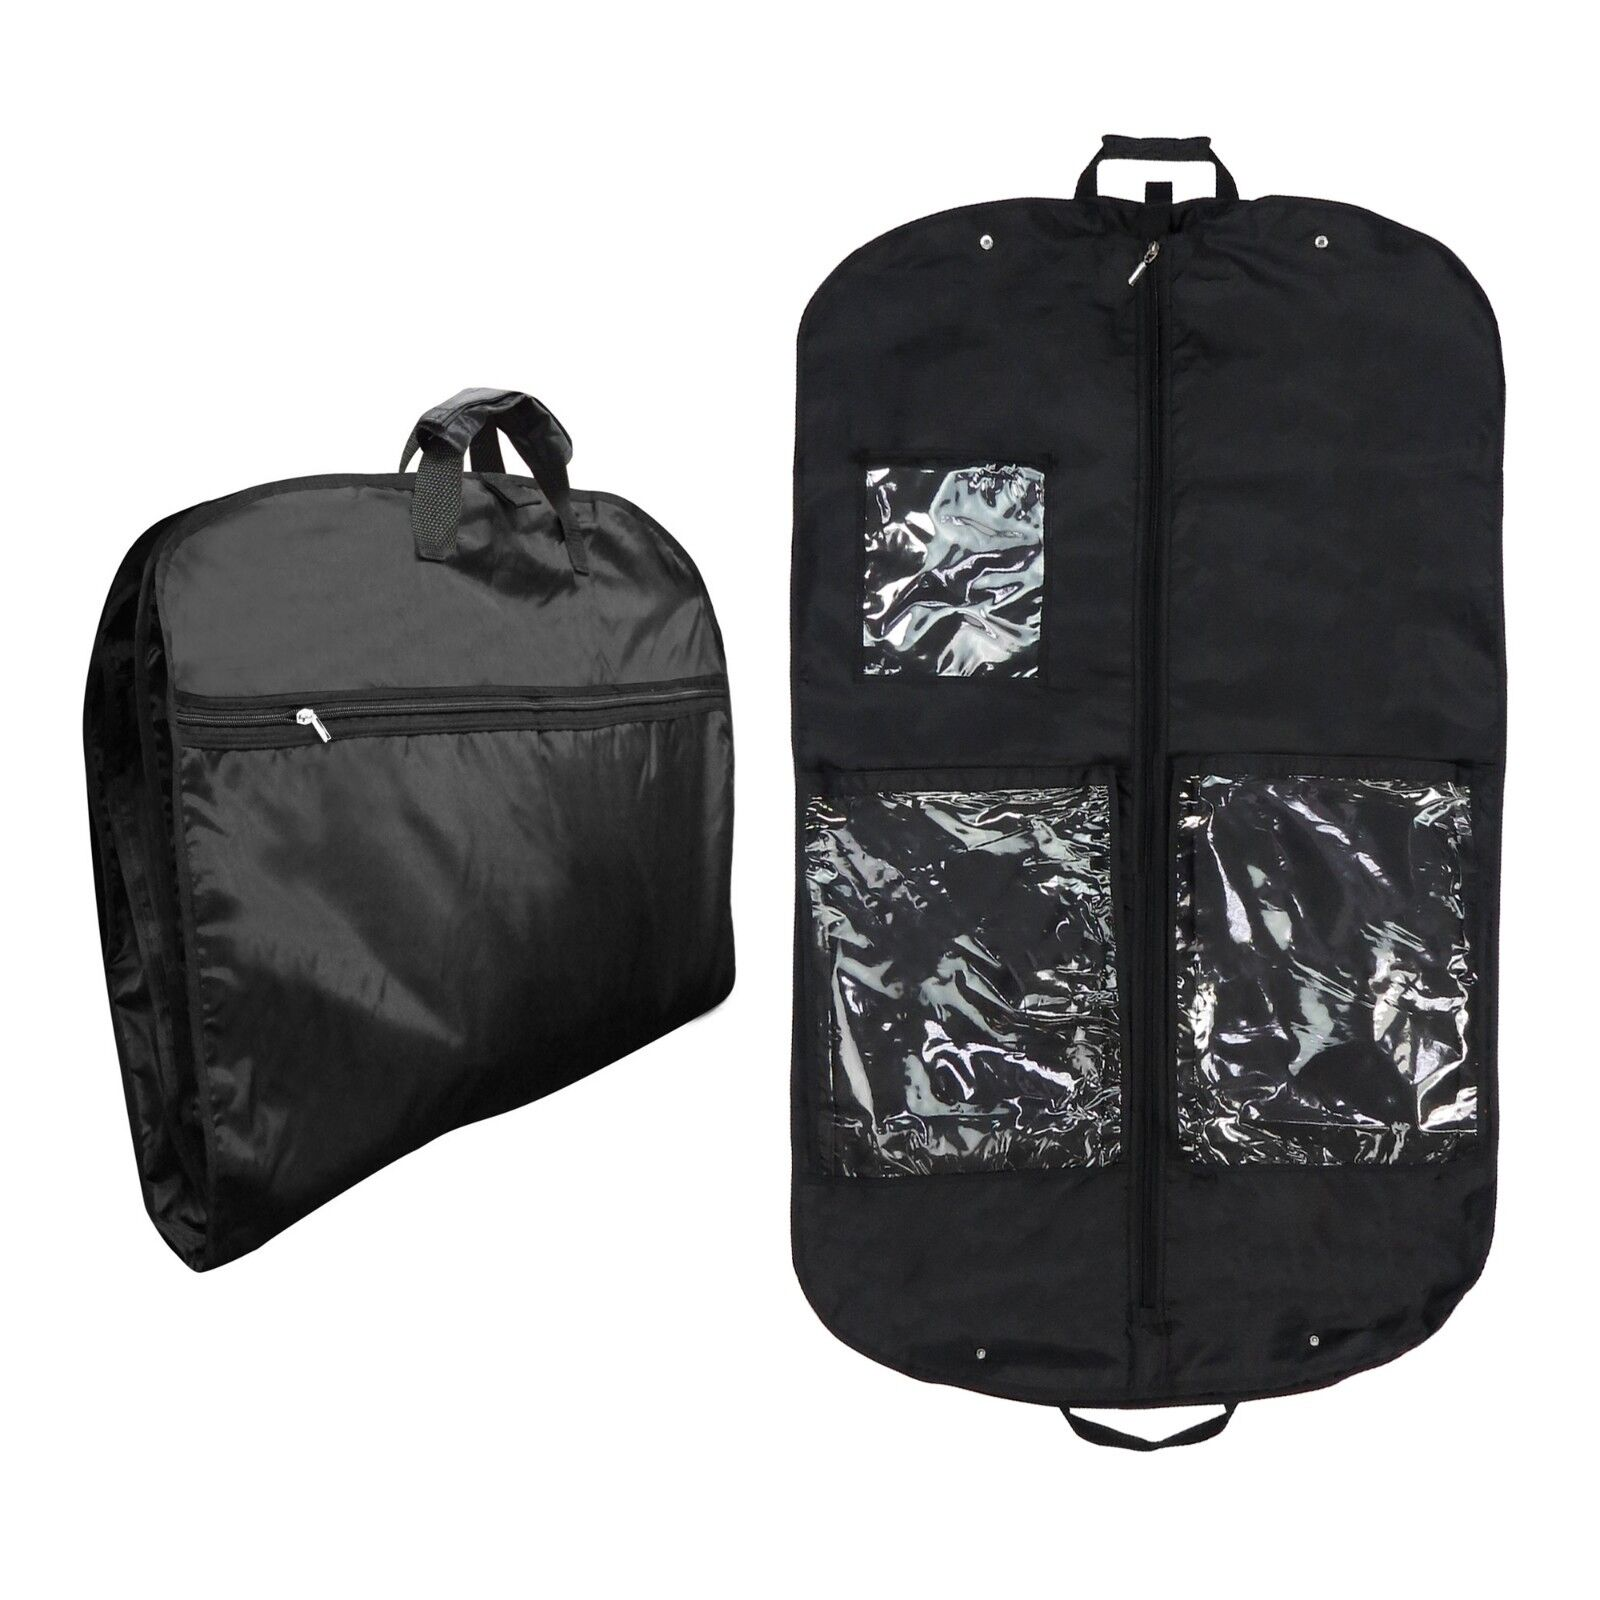 Hangerworld™ Pack of 5 Black 40 in Carry Suit Covers Garment Clothes Travel Bags